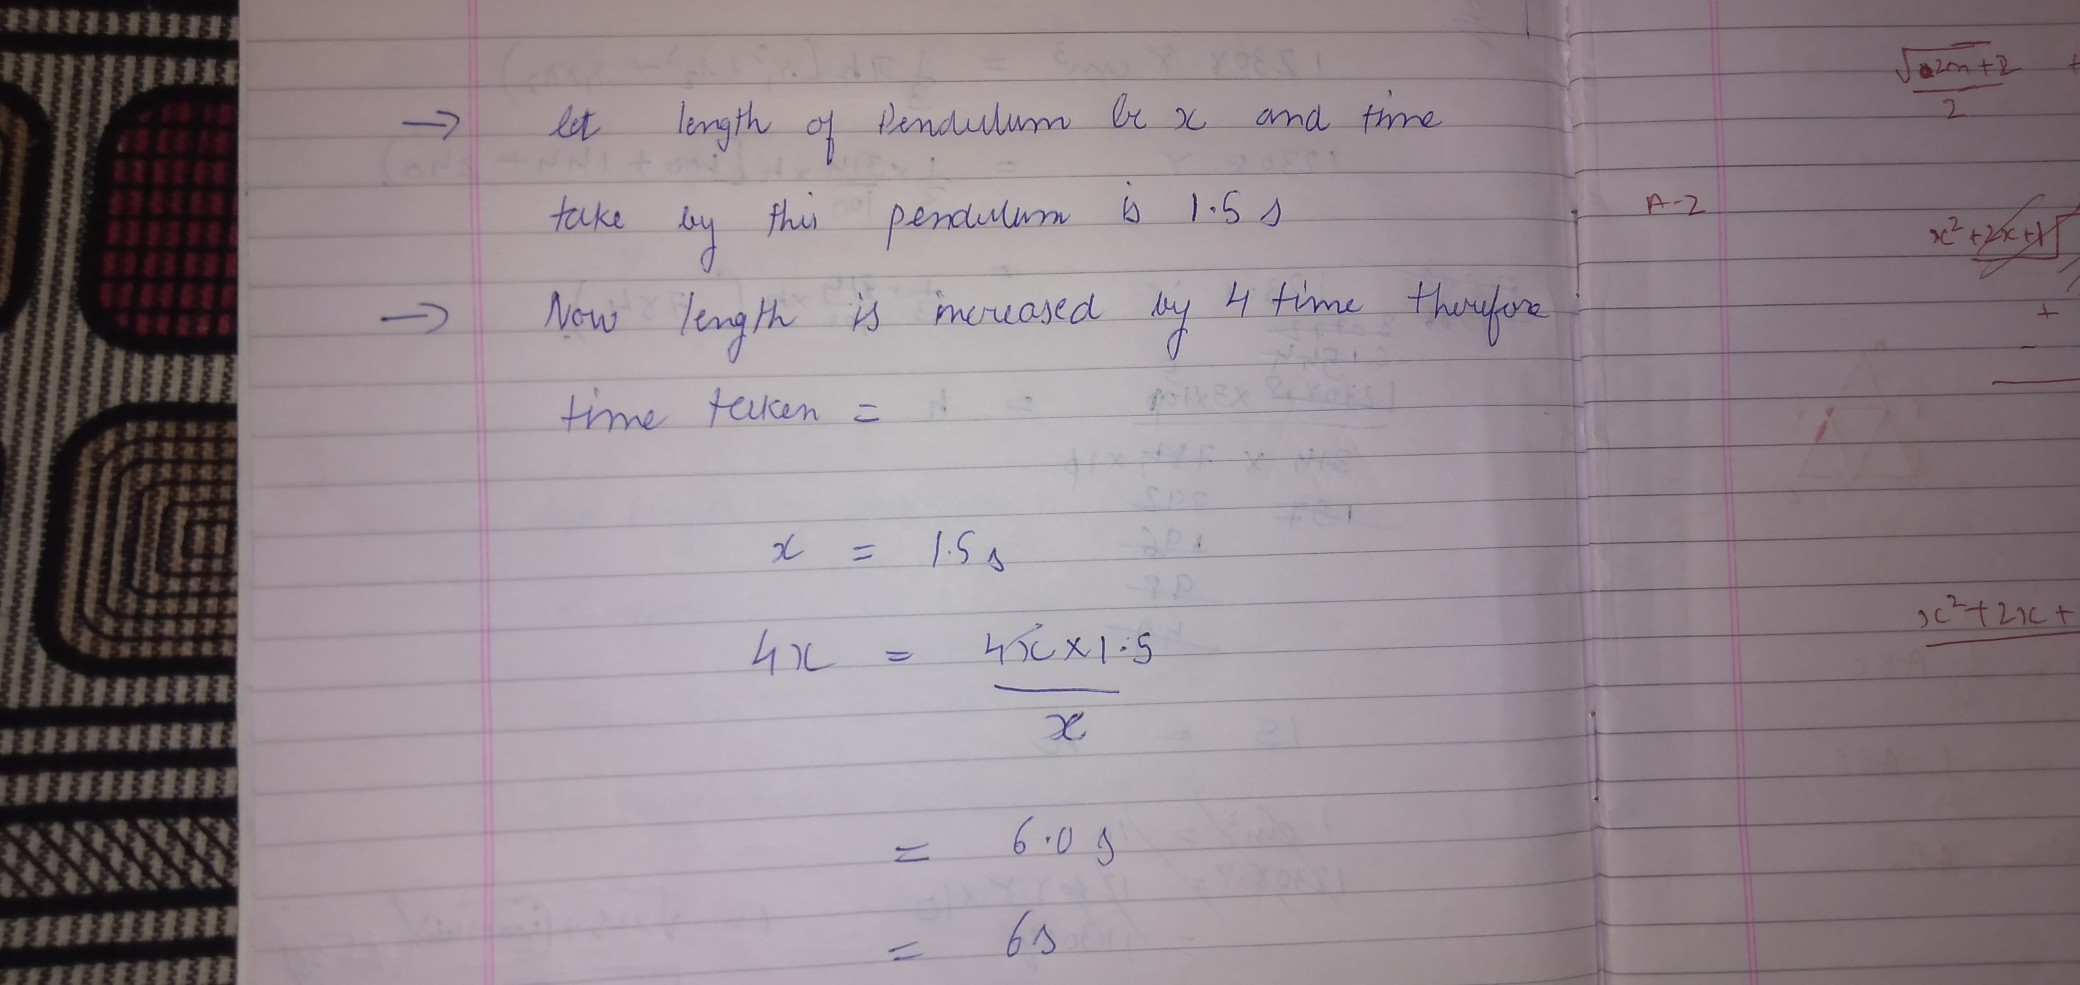 Time Period Of Simple Pendulum Is 1 5 Seconds If The